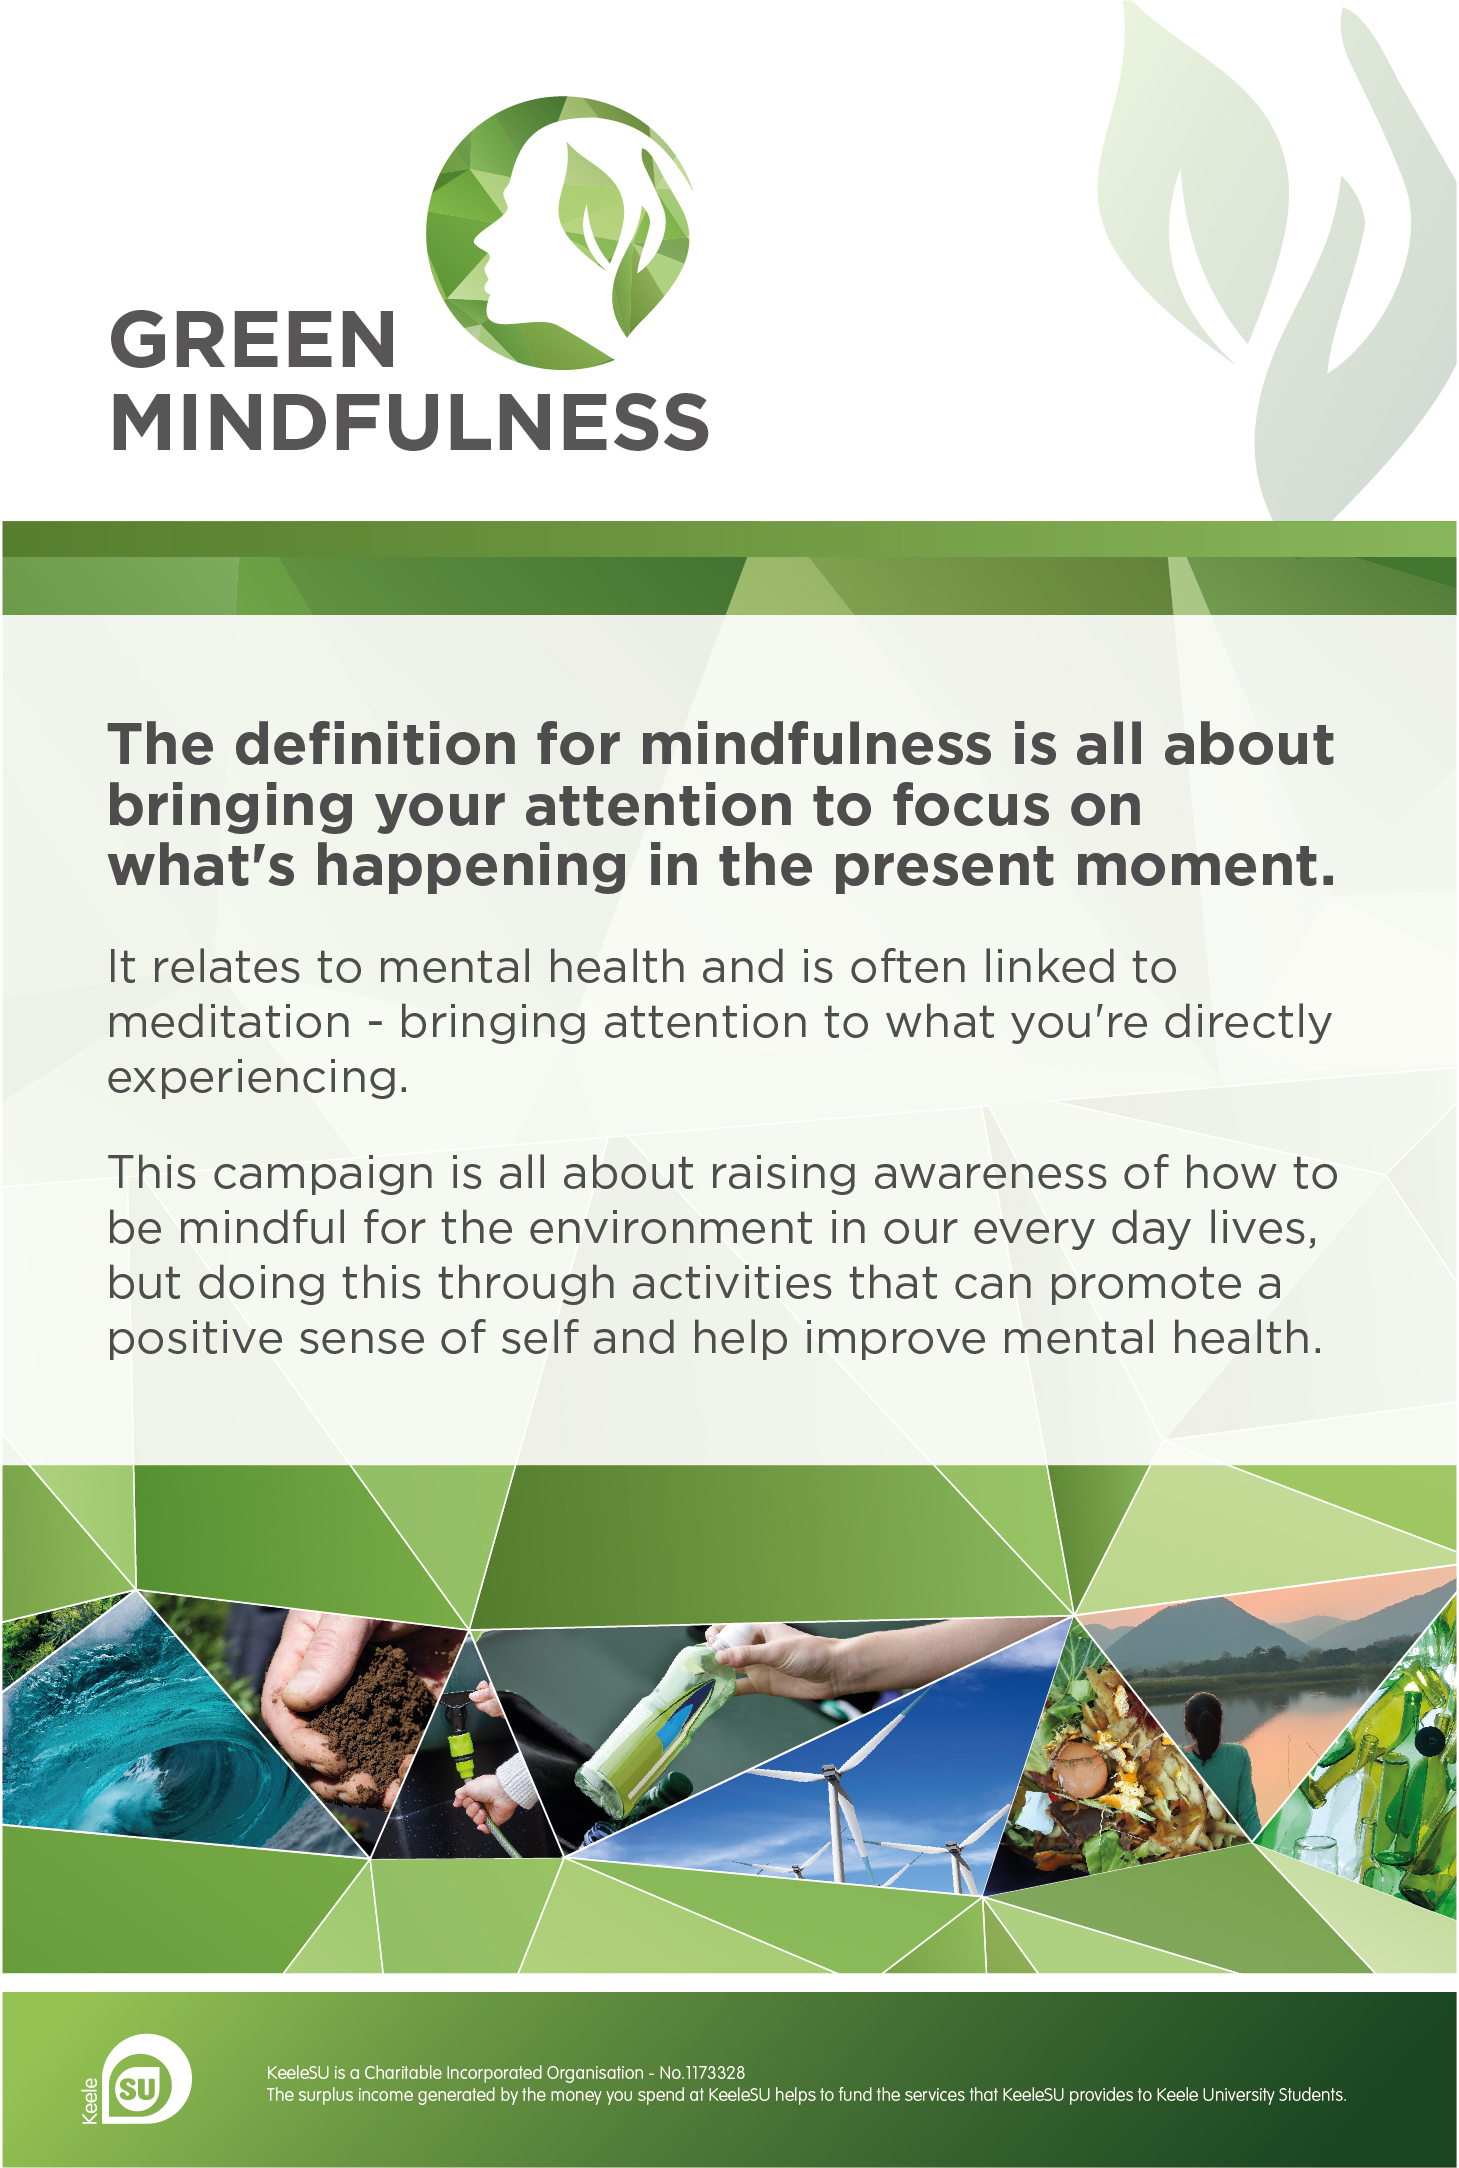 The definition of mindfulness is all about bringing your attention to focus on what's happening in the present moment. Green Mindfulness is all about raising awareness of how to be mindful for the environment in our every day lives, but doing this through activities that can promote a positive sense of self and help improve mental health.